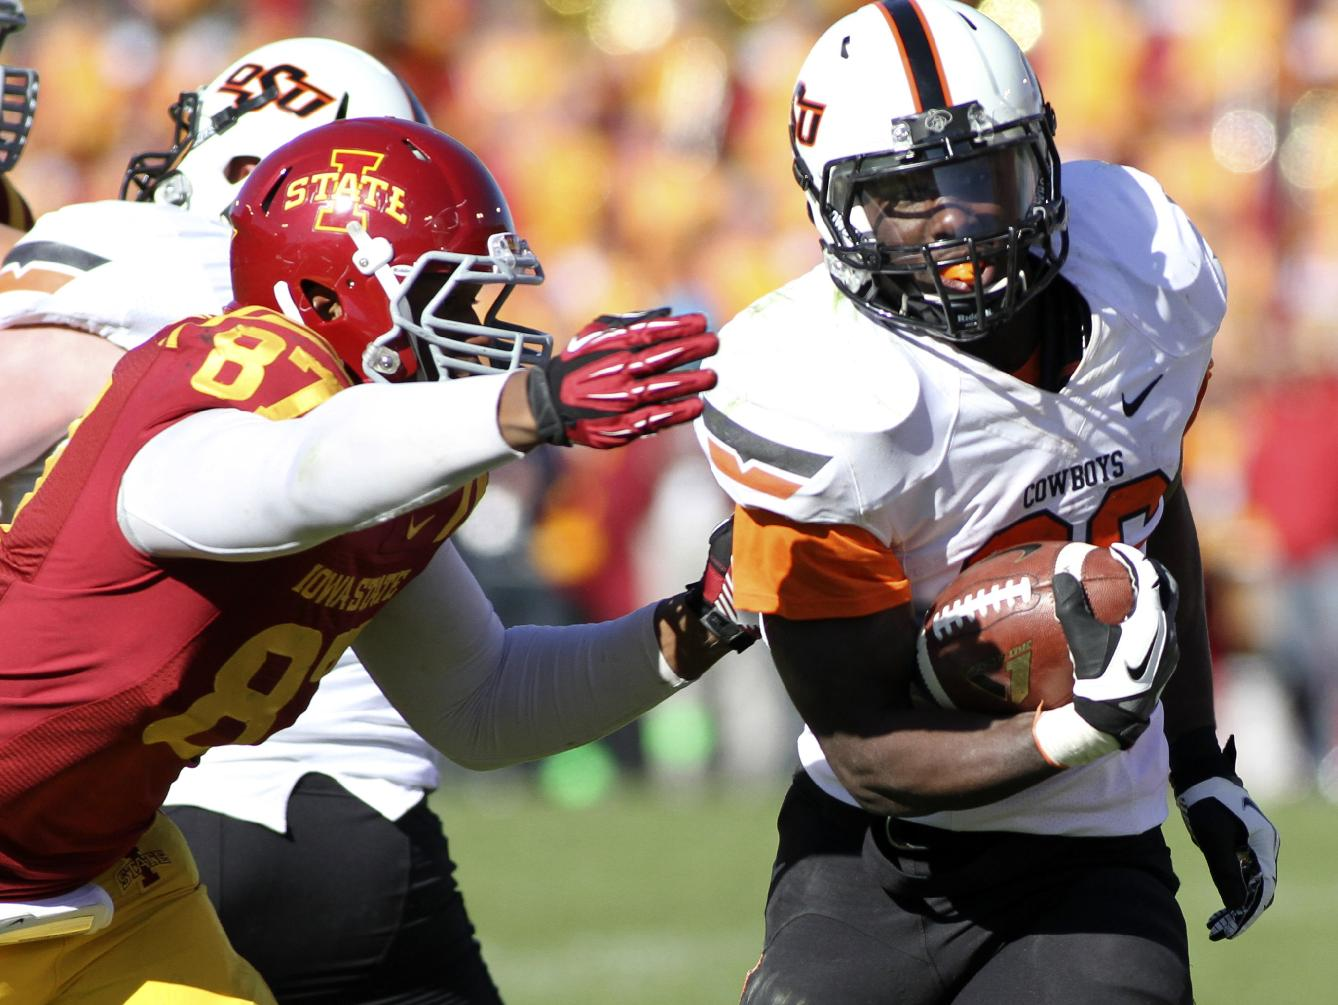 In this Oct. 26, 2013, file photo, Oklahoma State running back Desmond Roland (26) breaks away from Iowa State defensive lineman David Irving (87) during the second half of an NCAA college football game in Ames, Iowa. Roland provided Oklahoma State's running game with a much-needed boost in his first start last week, rushing for 219 yards in a win over Iowa State. The junior hopes to continue his production this week at Texas Tech. (AP Photo by Justin Hayworth, File)